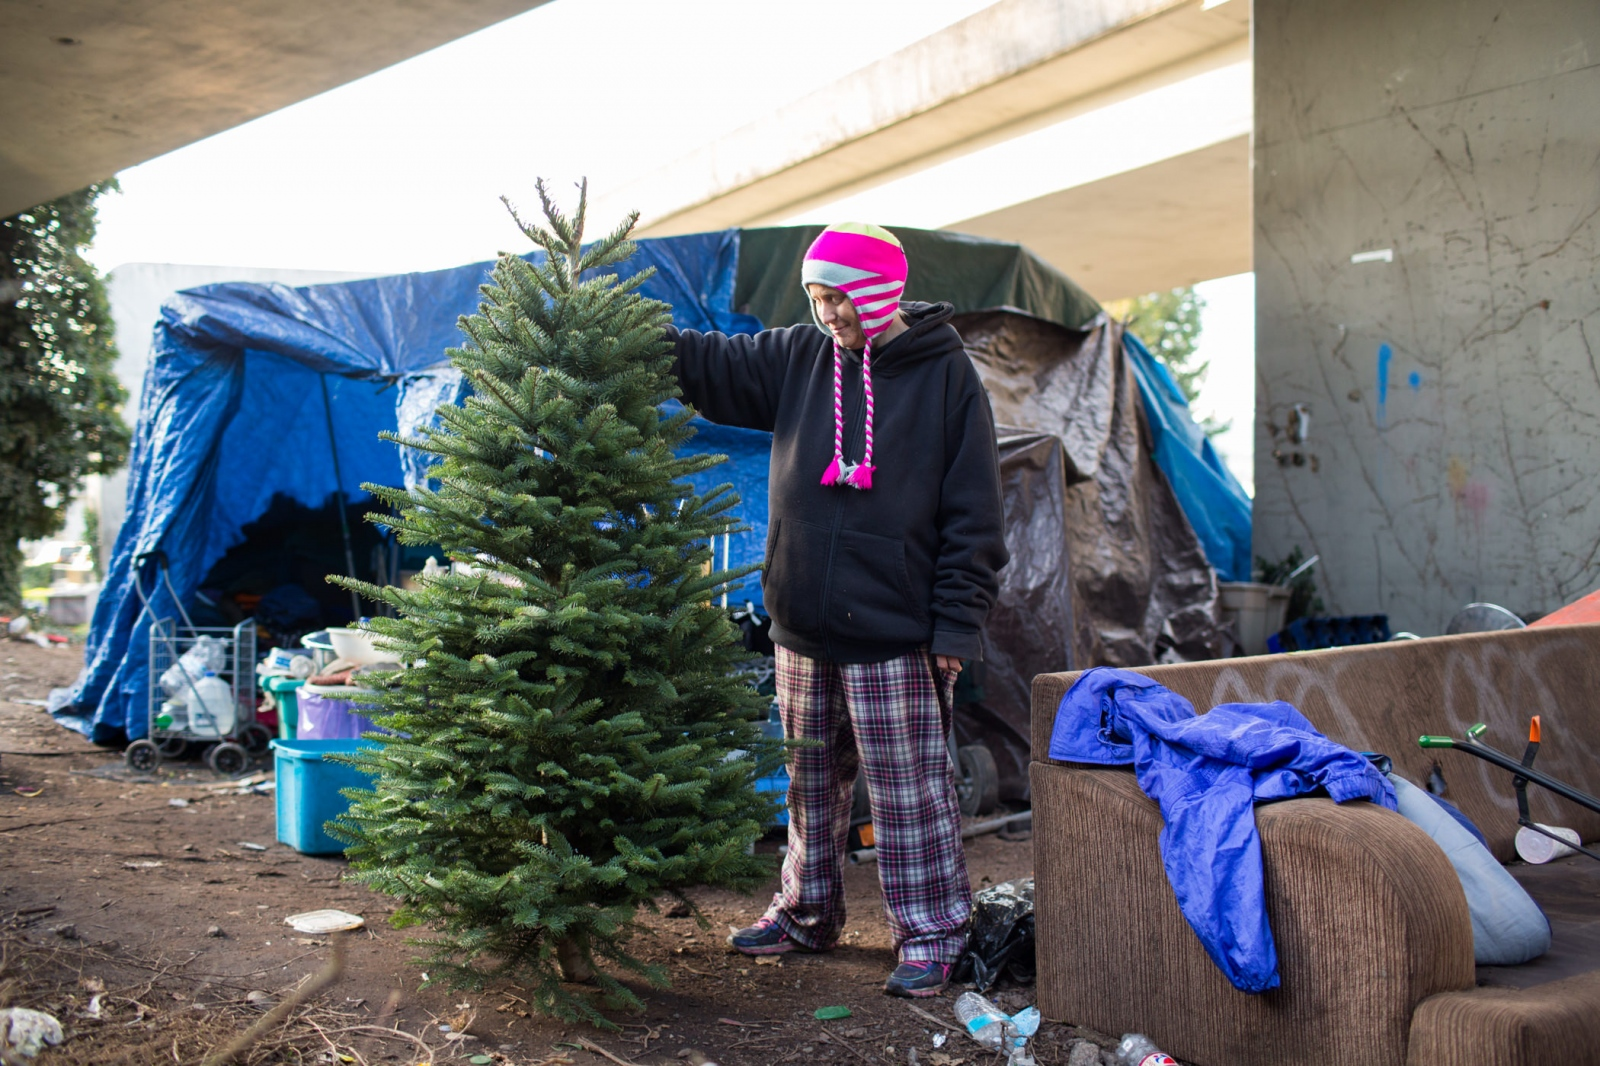 Brandie Osborne, 44, near what was formerly 'the Jungle,' a large, unsanctioned camp in Seattle which was cleared last year. 'Homeless at Christmas' for the Guardian